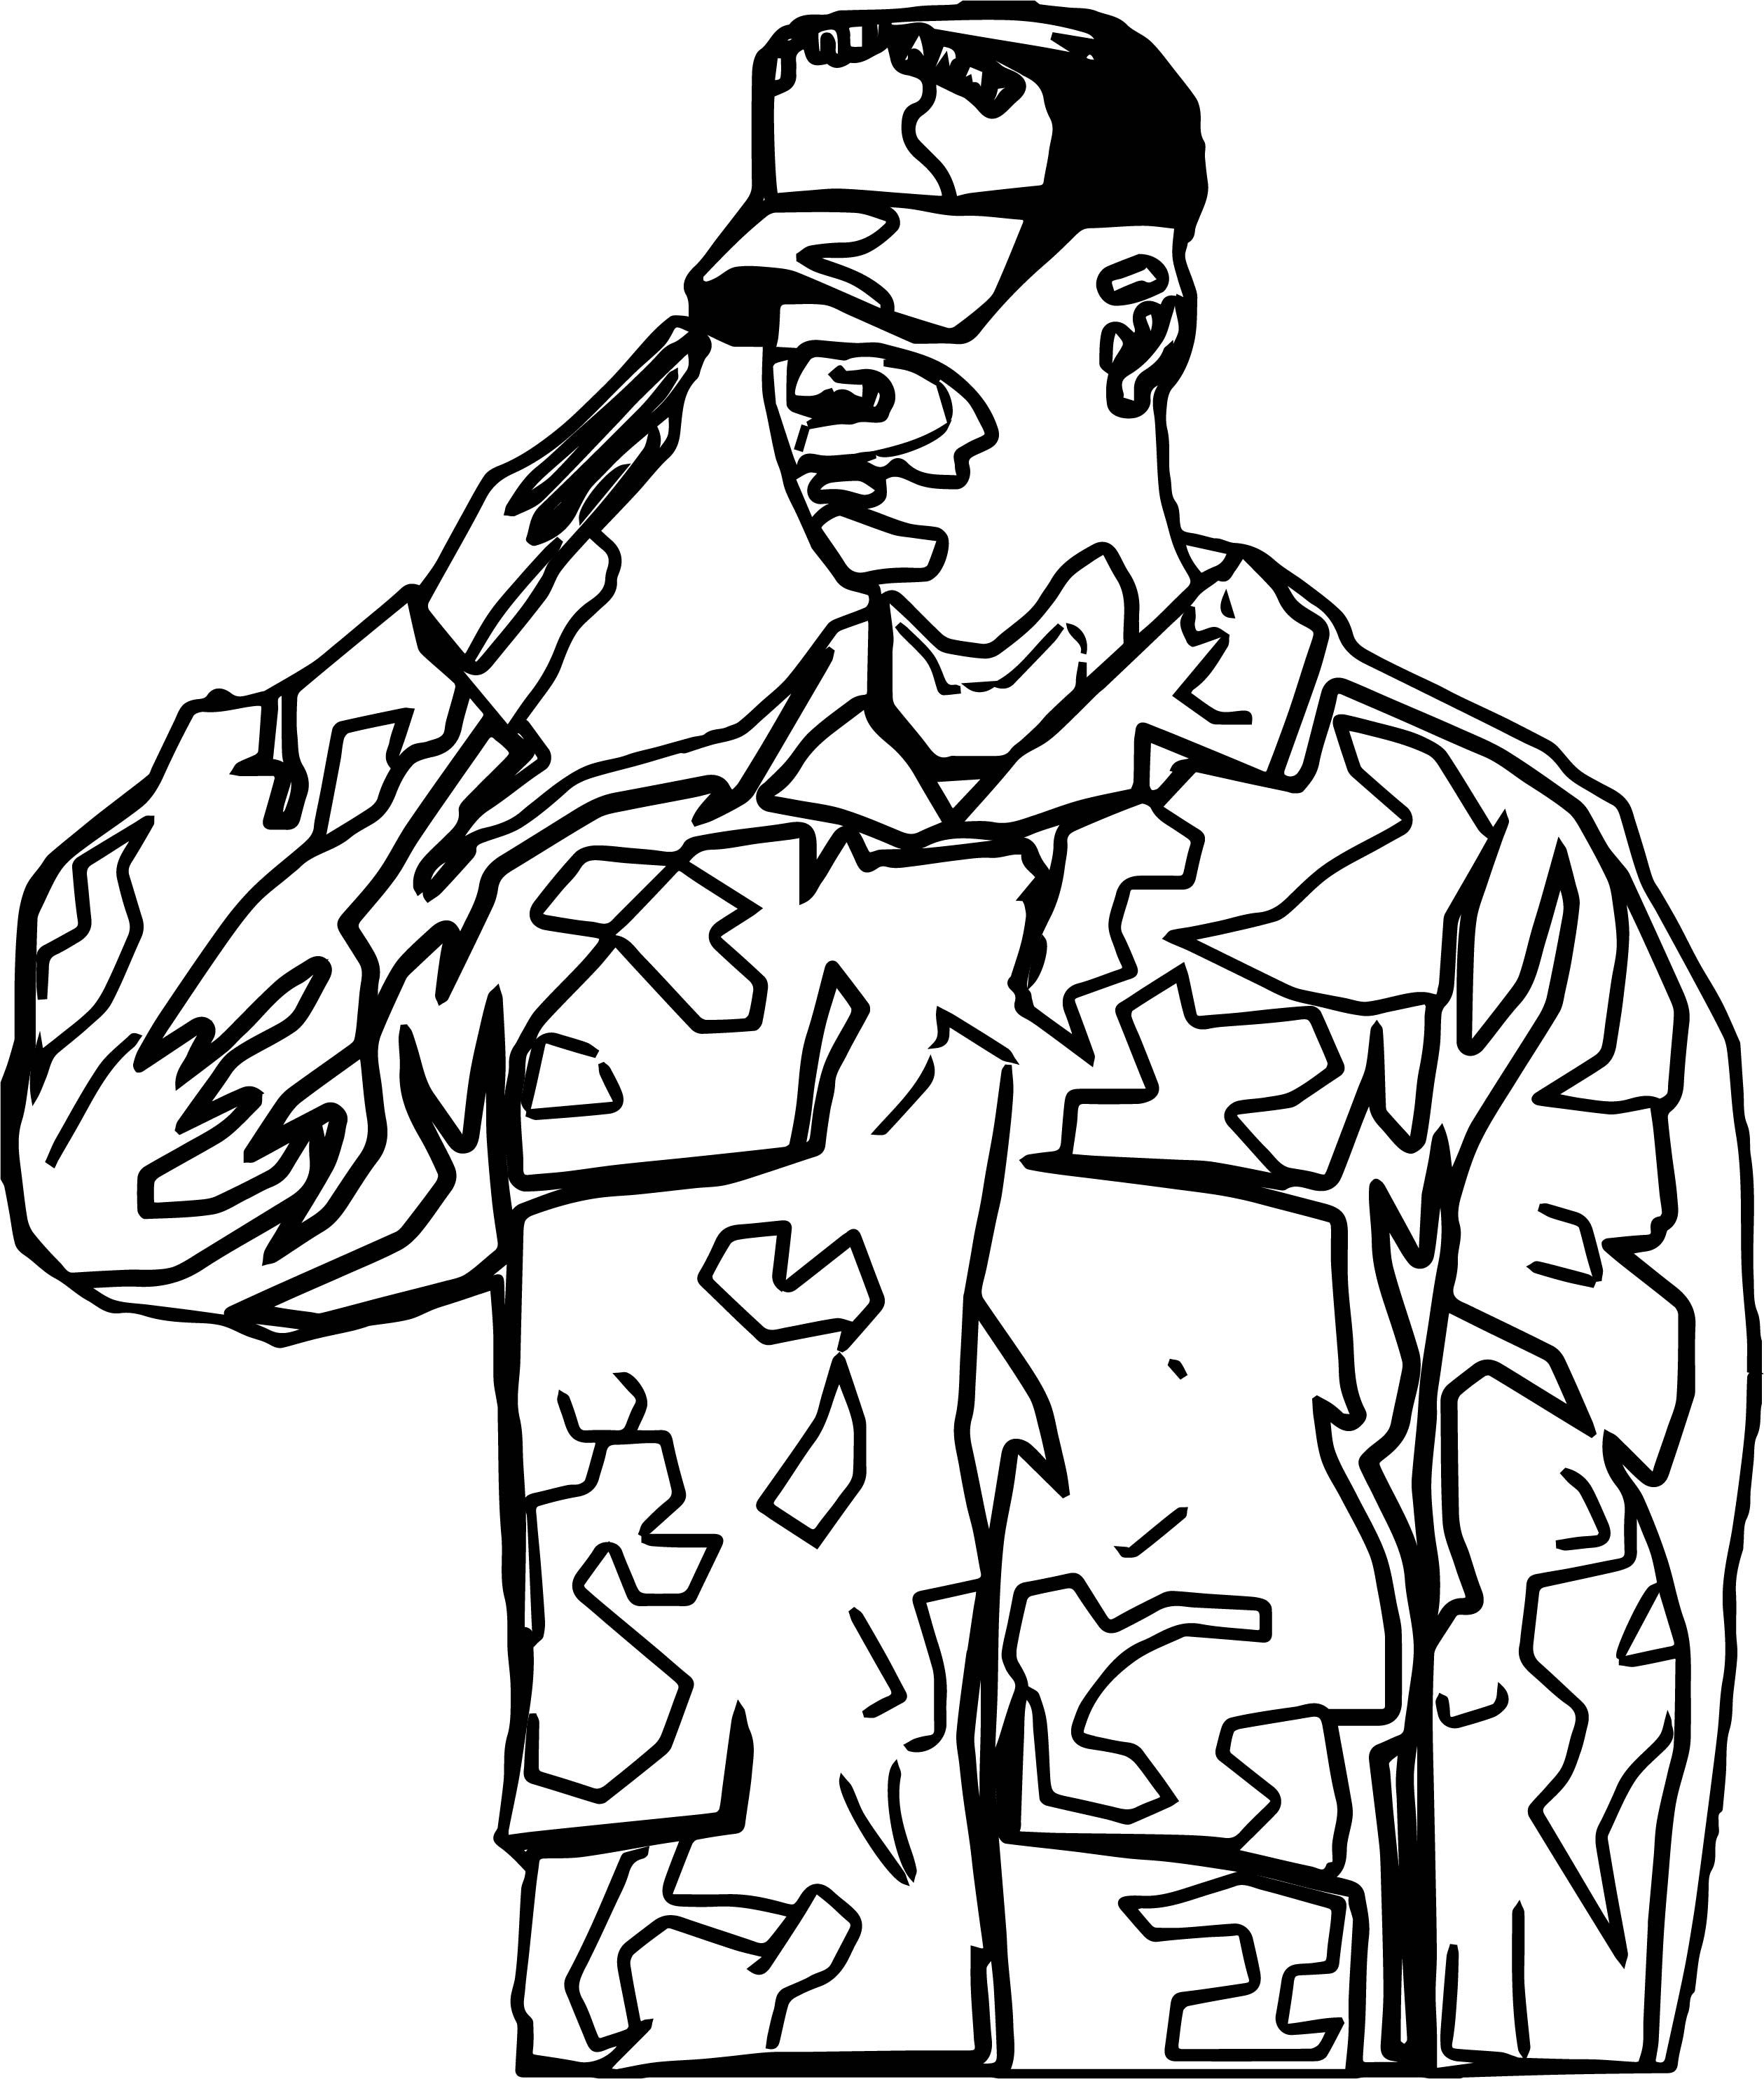 Awesome Soldier Salute Coloring Page Coloring Pages American